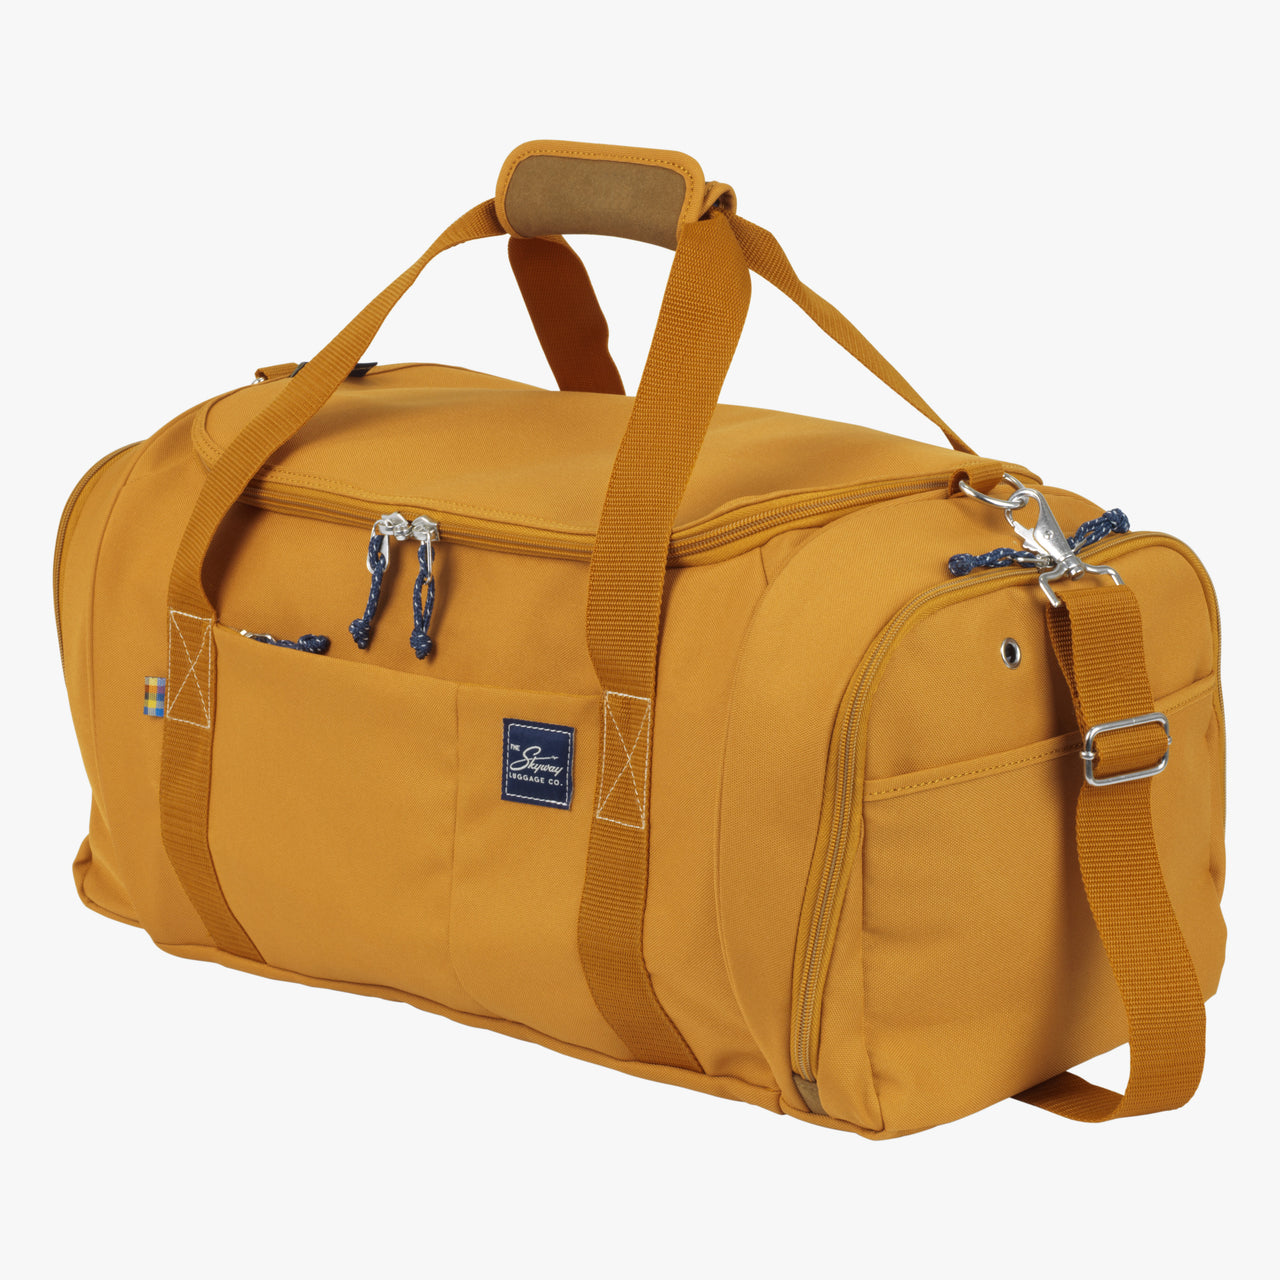 Whidbey Small Duffel in Honey Yellow